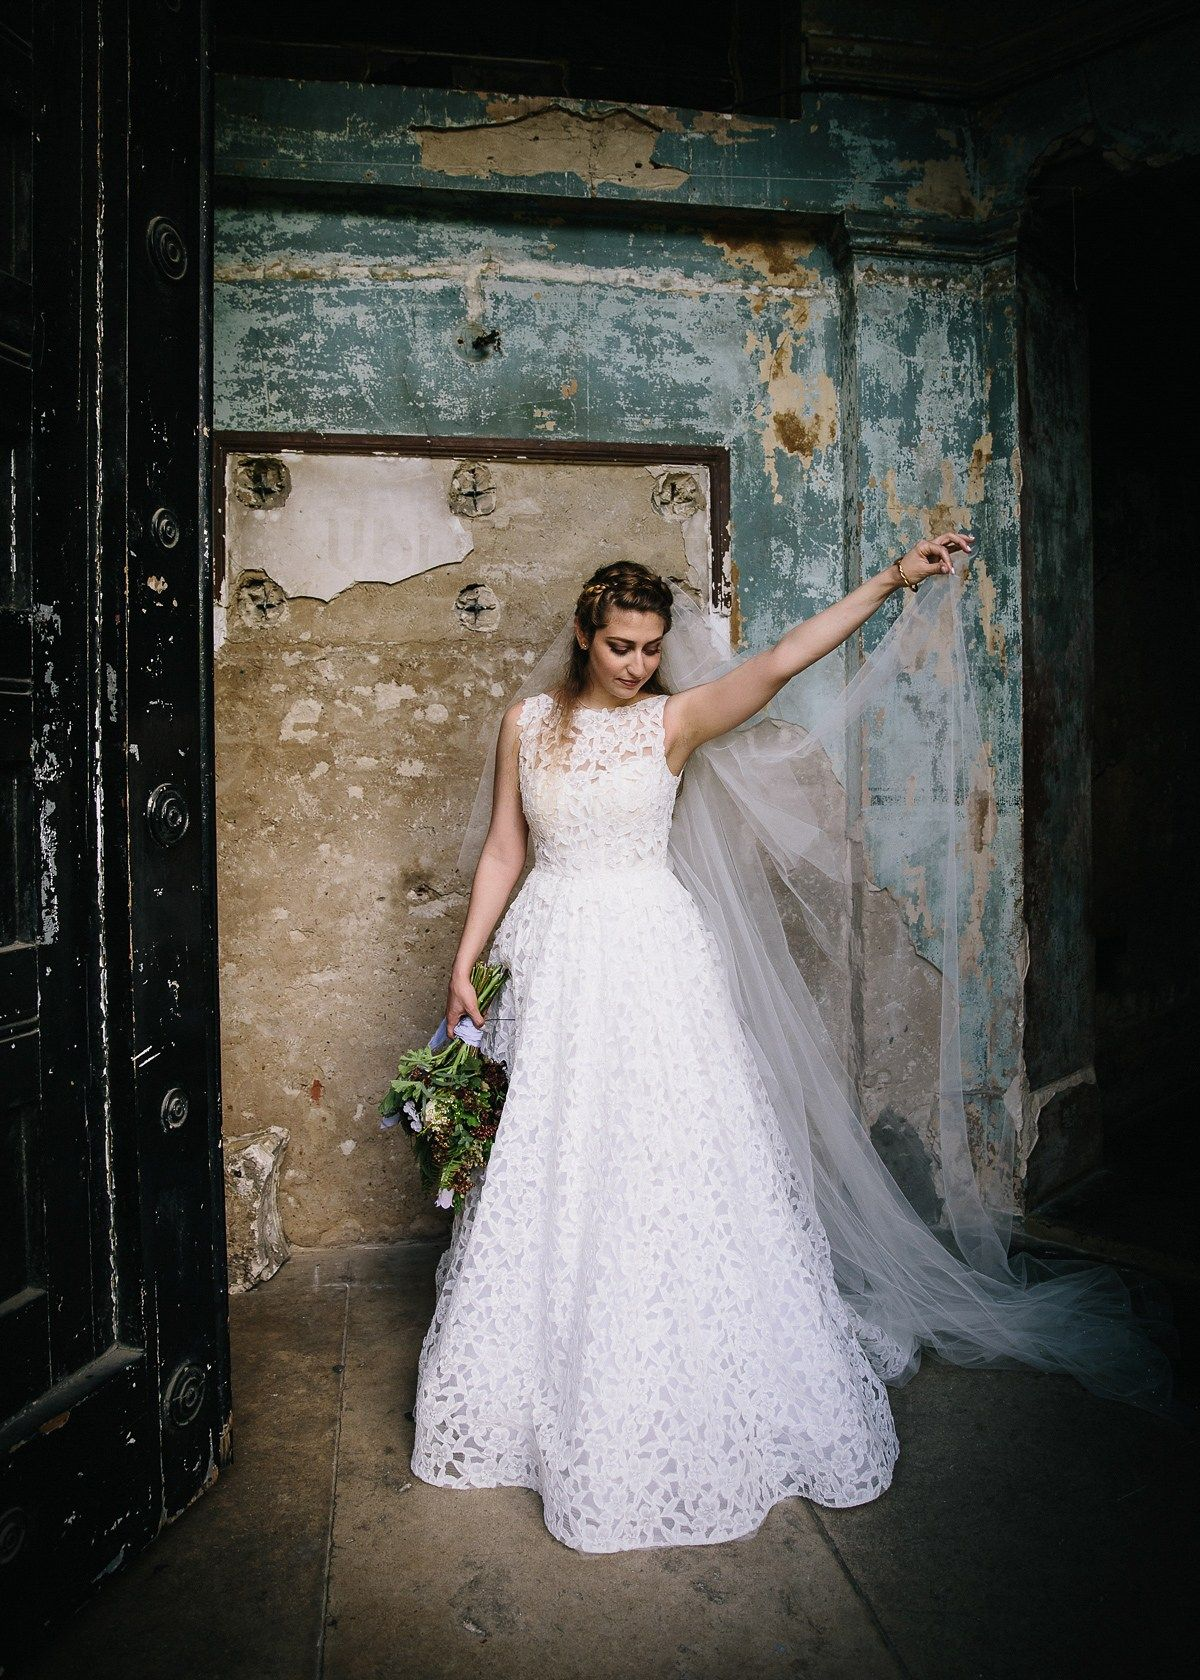 Bride wears an Amsale Dress for an Antique London Inspired Wedding. Images by Eclection Photography